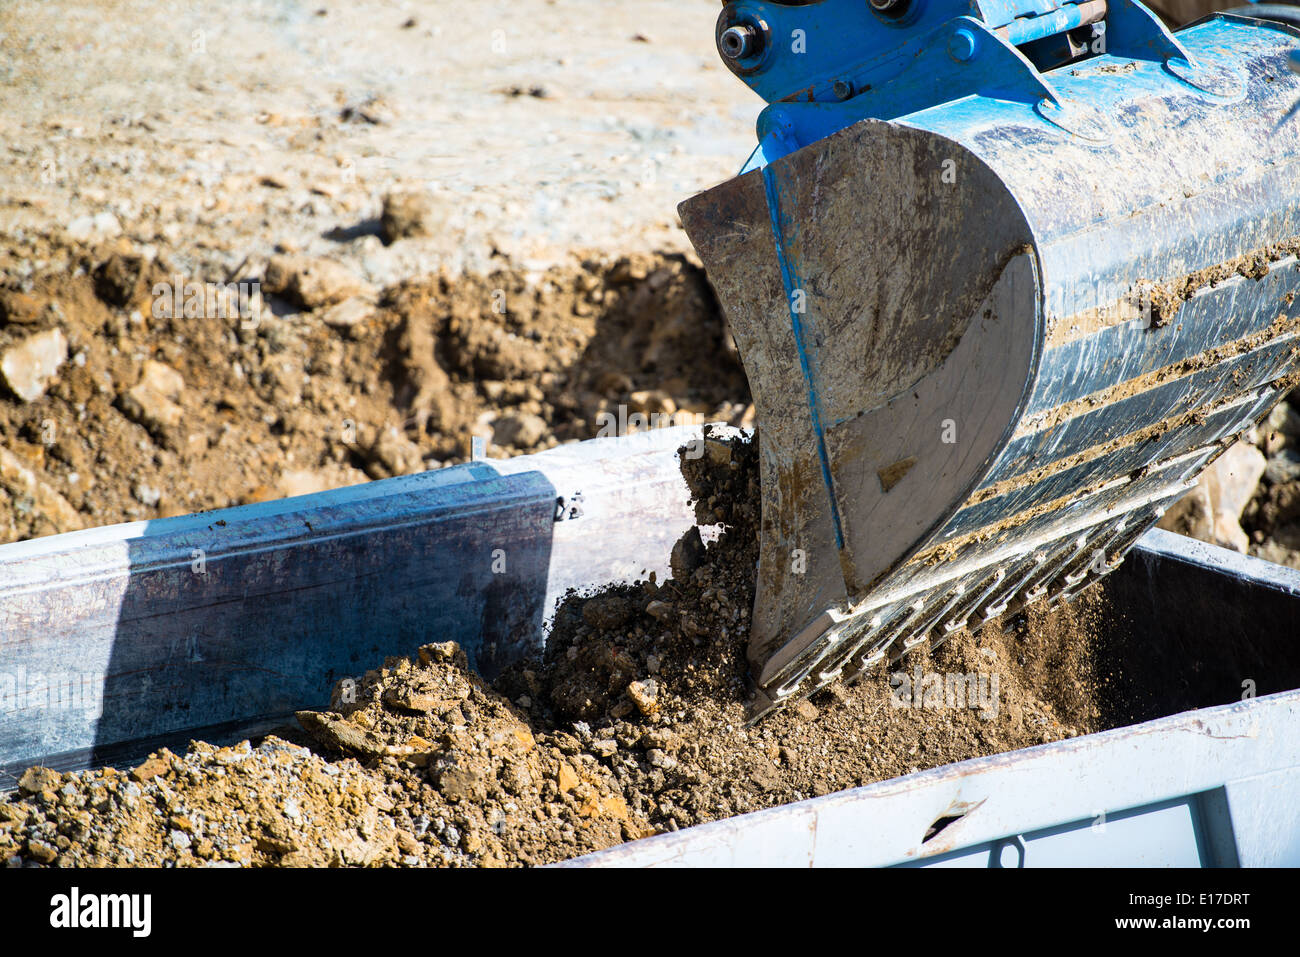 Closeup of dump truck being filled by excavator - Stock Image